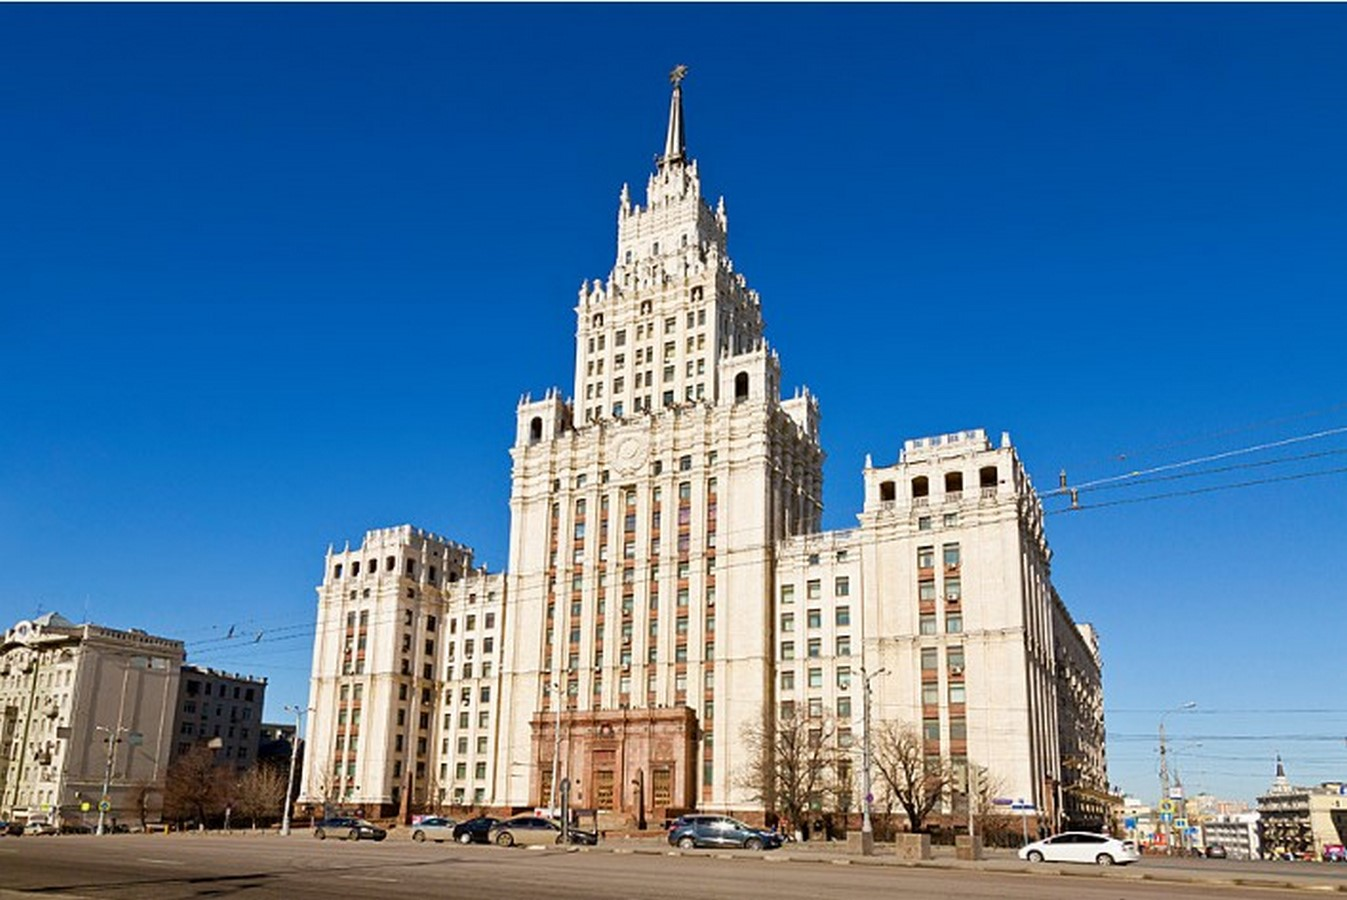 10 Things you did not know about the Stalinist architecture - Sheet8